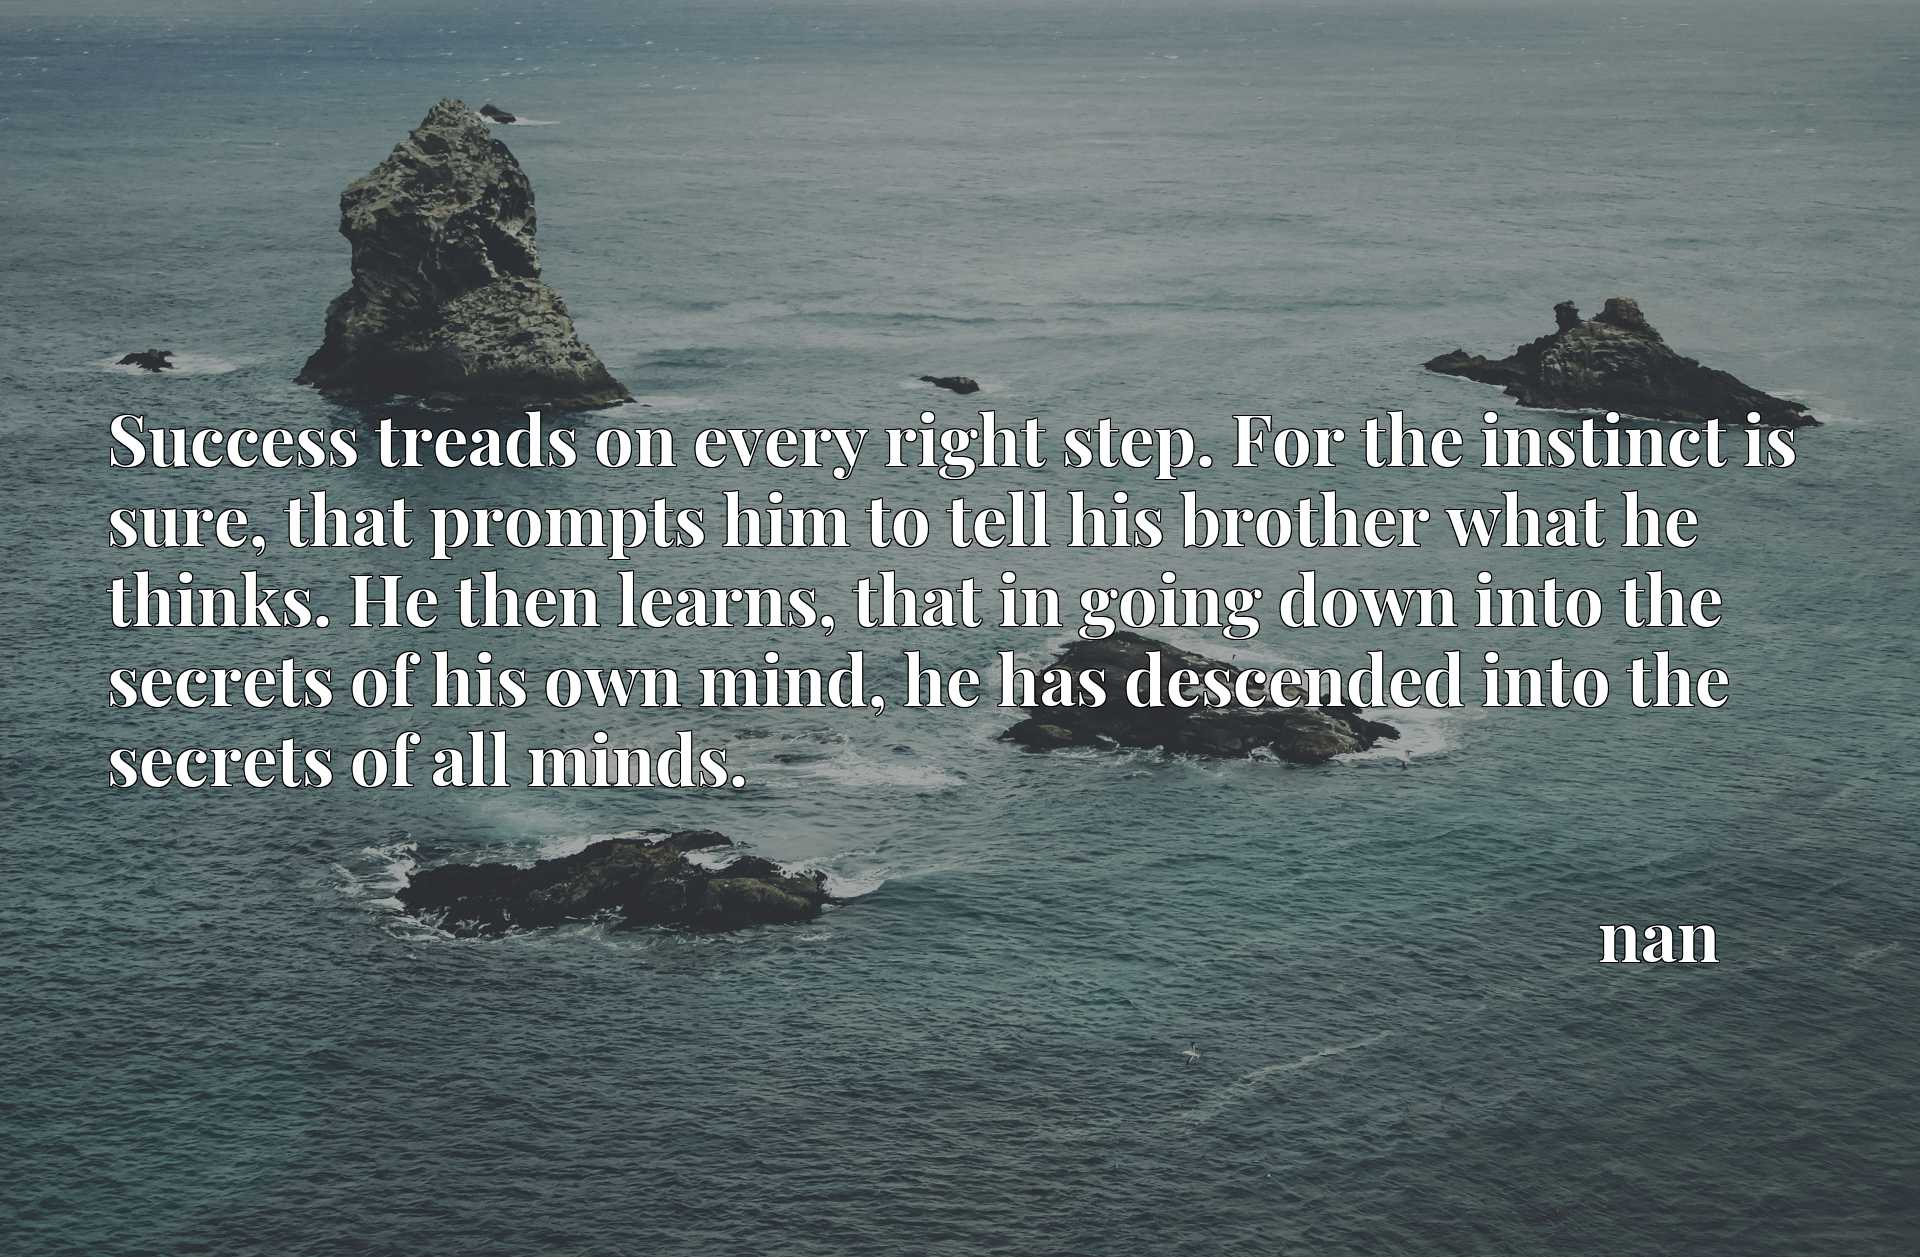 Success treads on every right step. For the instinct is sure, that prompts him to tell his brother what he thinks. He then learns, that in going down into the secrets of his own mind, he has descended into the secrets of all minds.